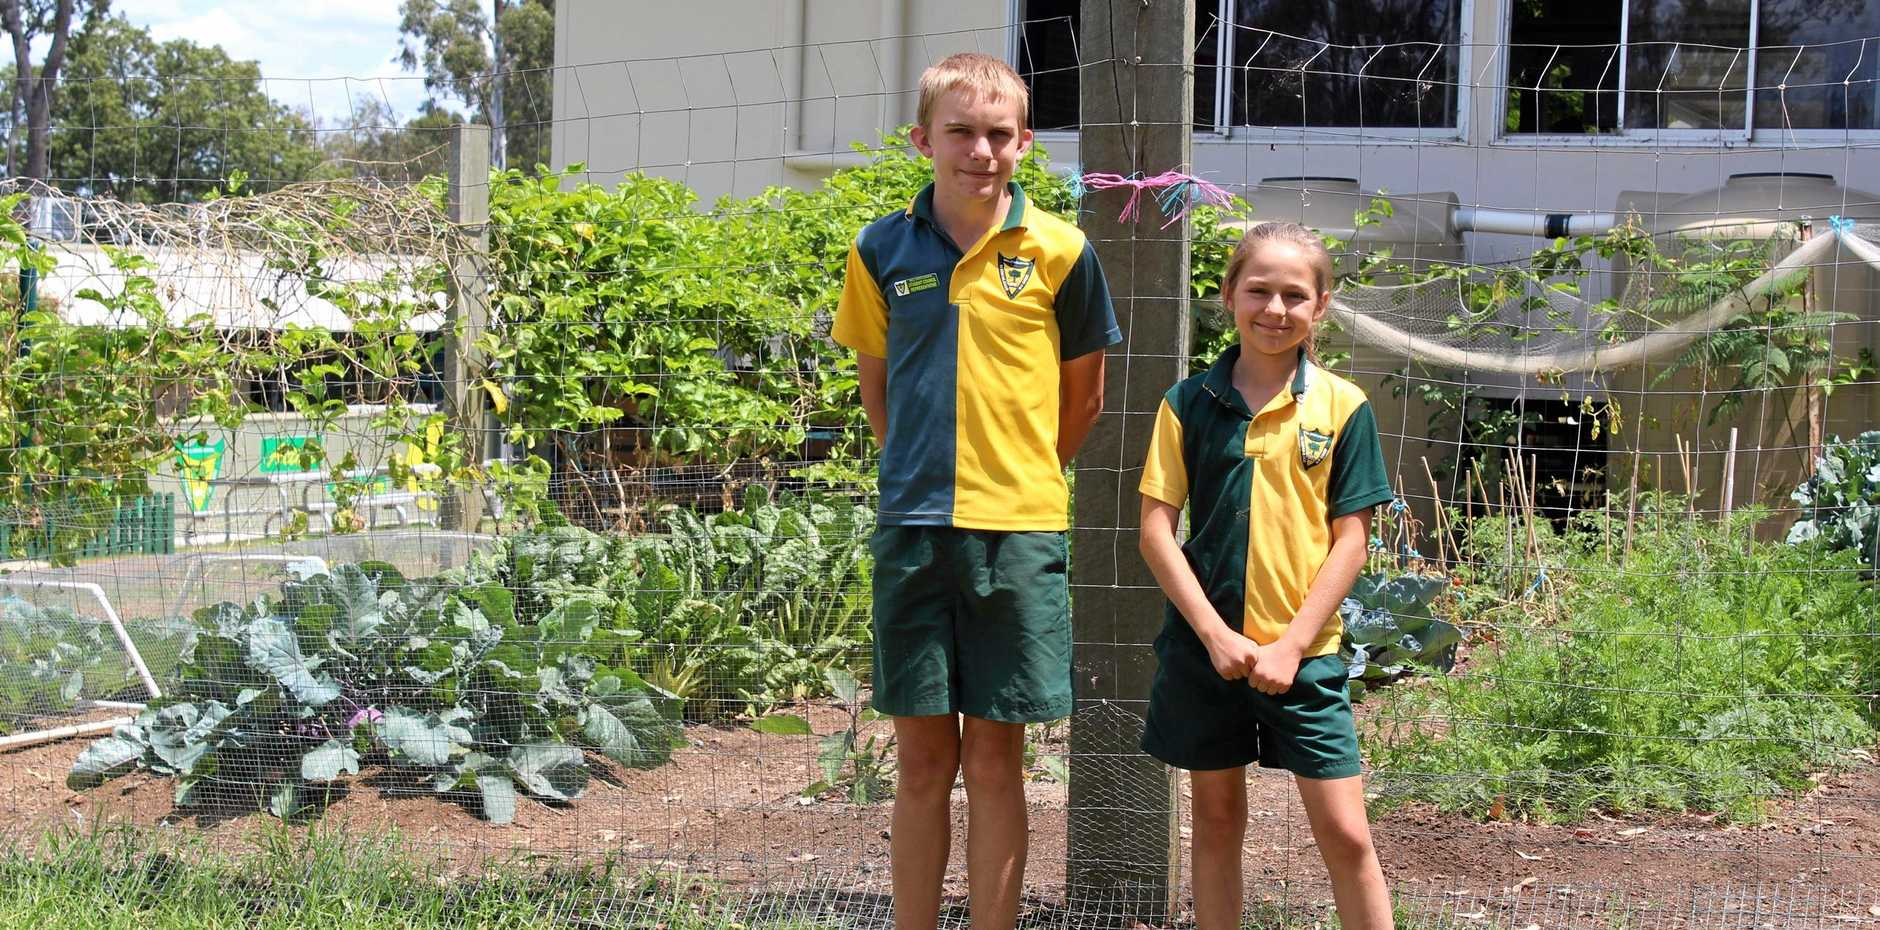 WELL DONE: Green is the new gold for Bell State School, after they led their school to a victory in the Eco Schools program, achieving the Green Flag status. Pictured are William Green and Tahleyah Fullagar.